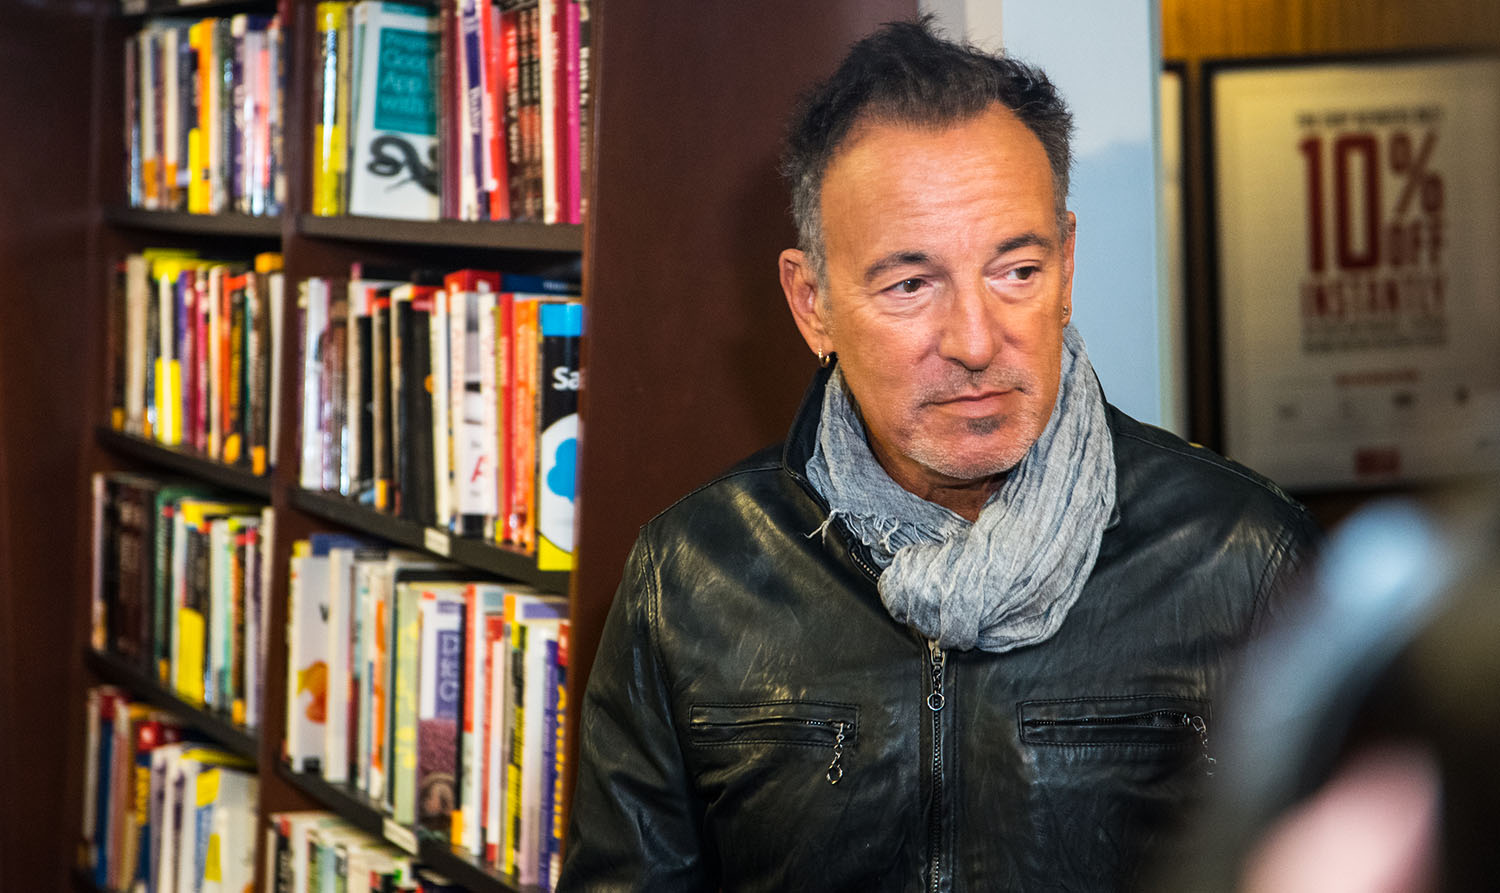 SpringsteenHarvardCoop_9952_HomeWeb.jpg